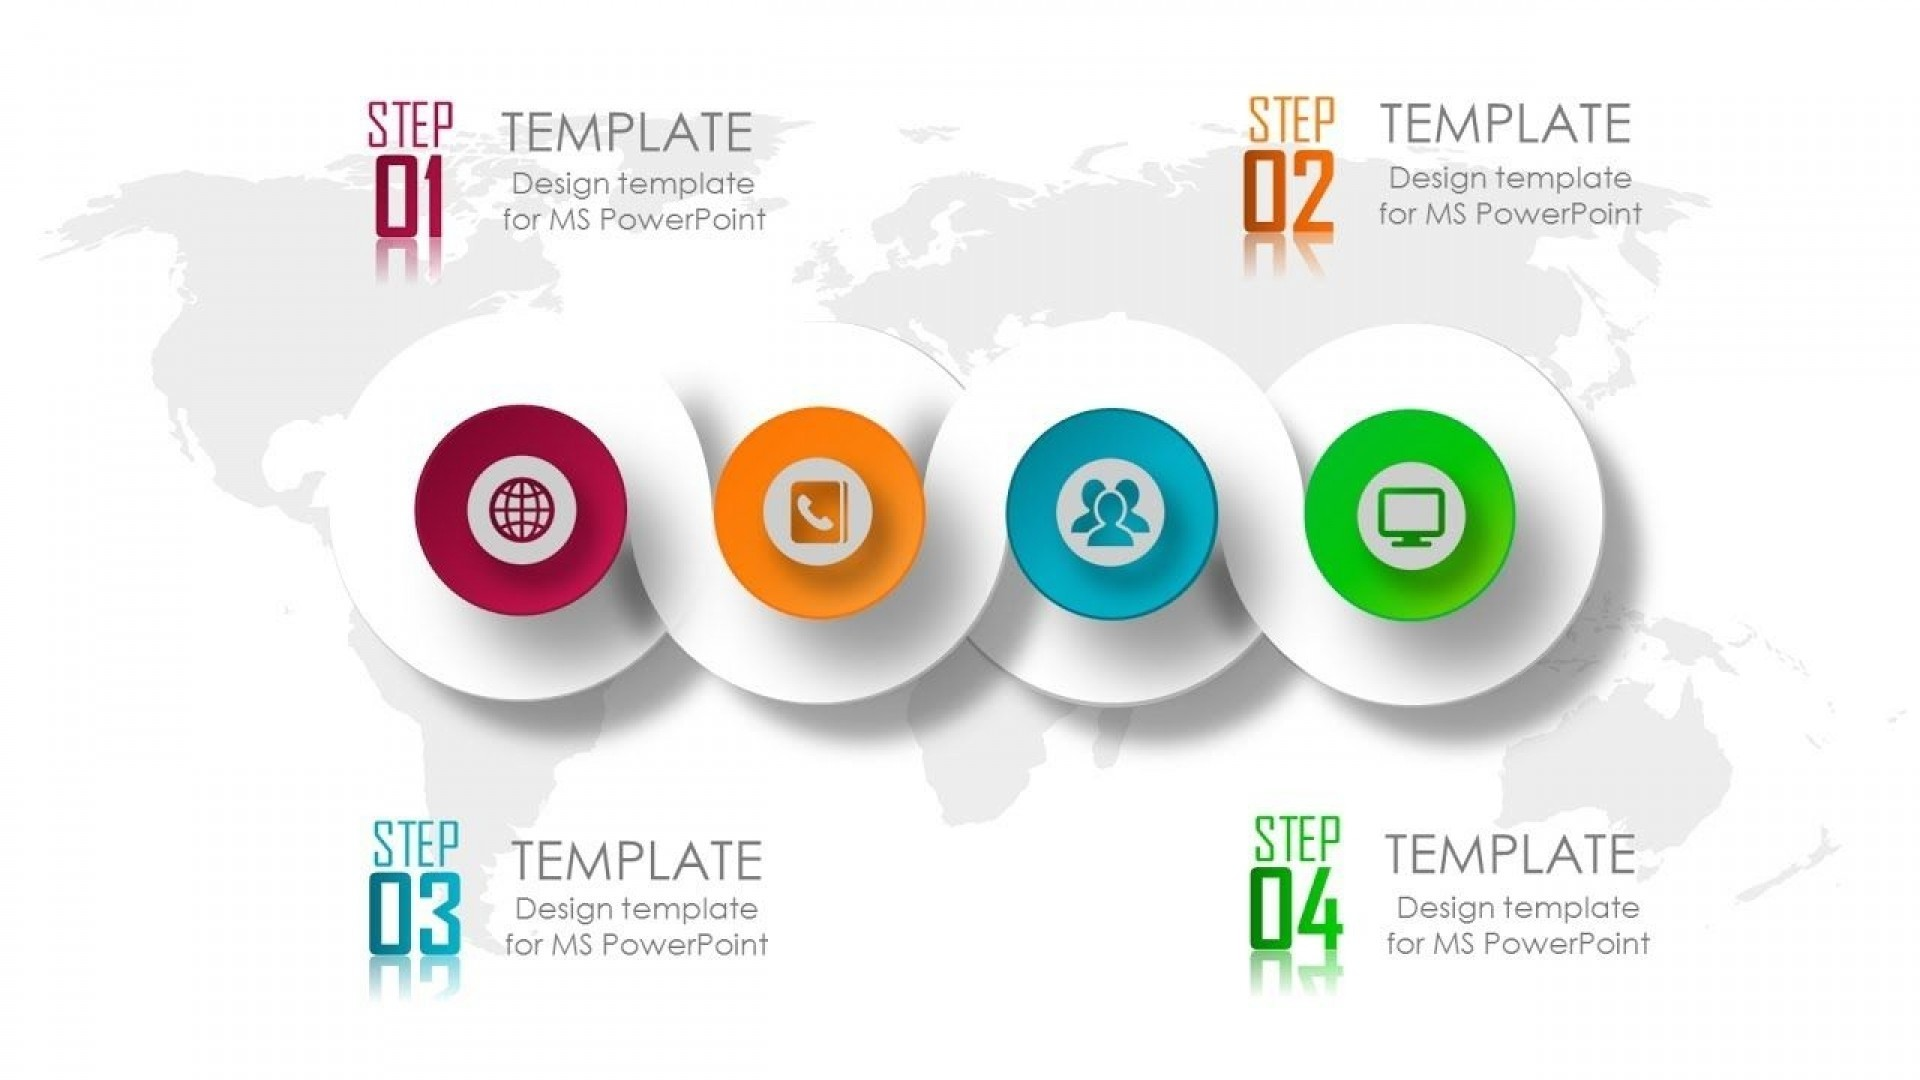 019 Free Downloadable Powerpoint Templates Animated Template.